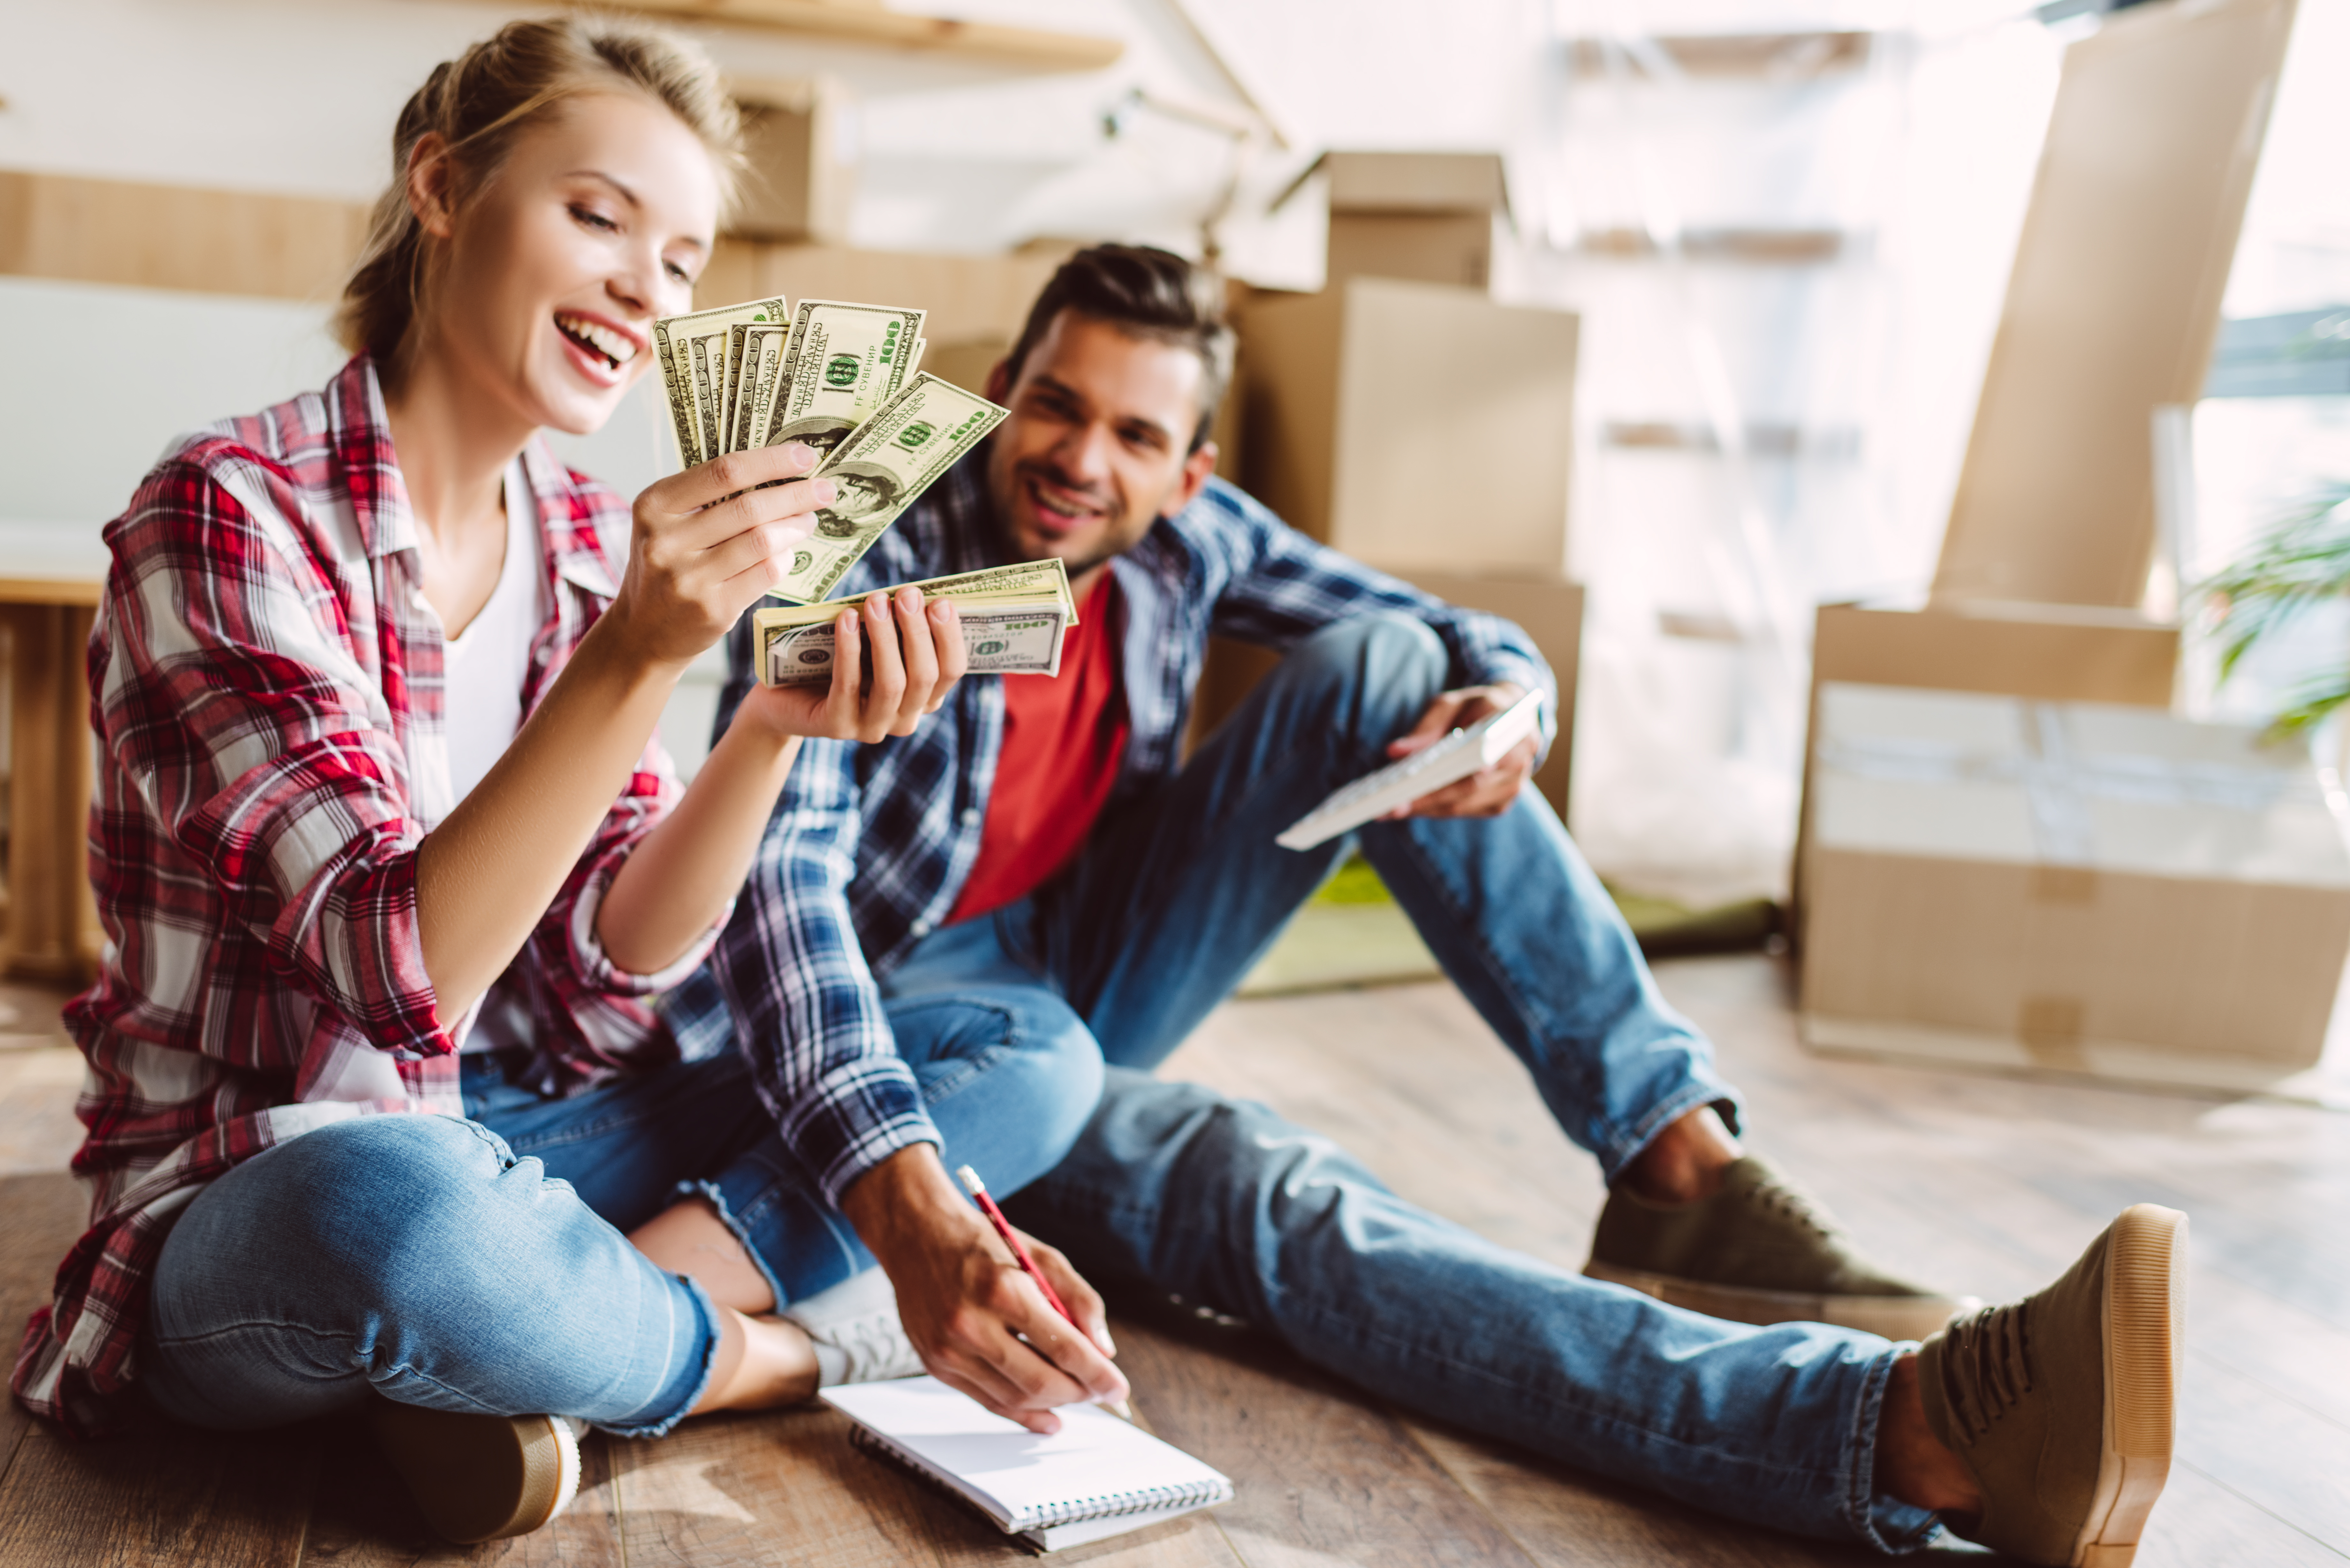 Young couple happy about having extra cash